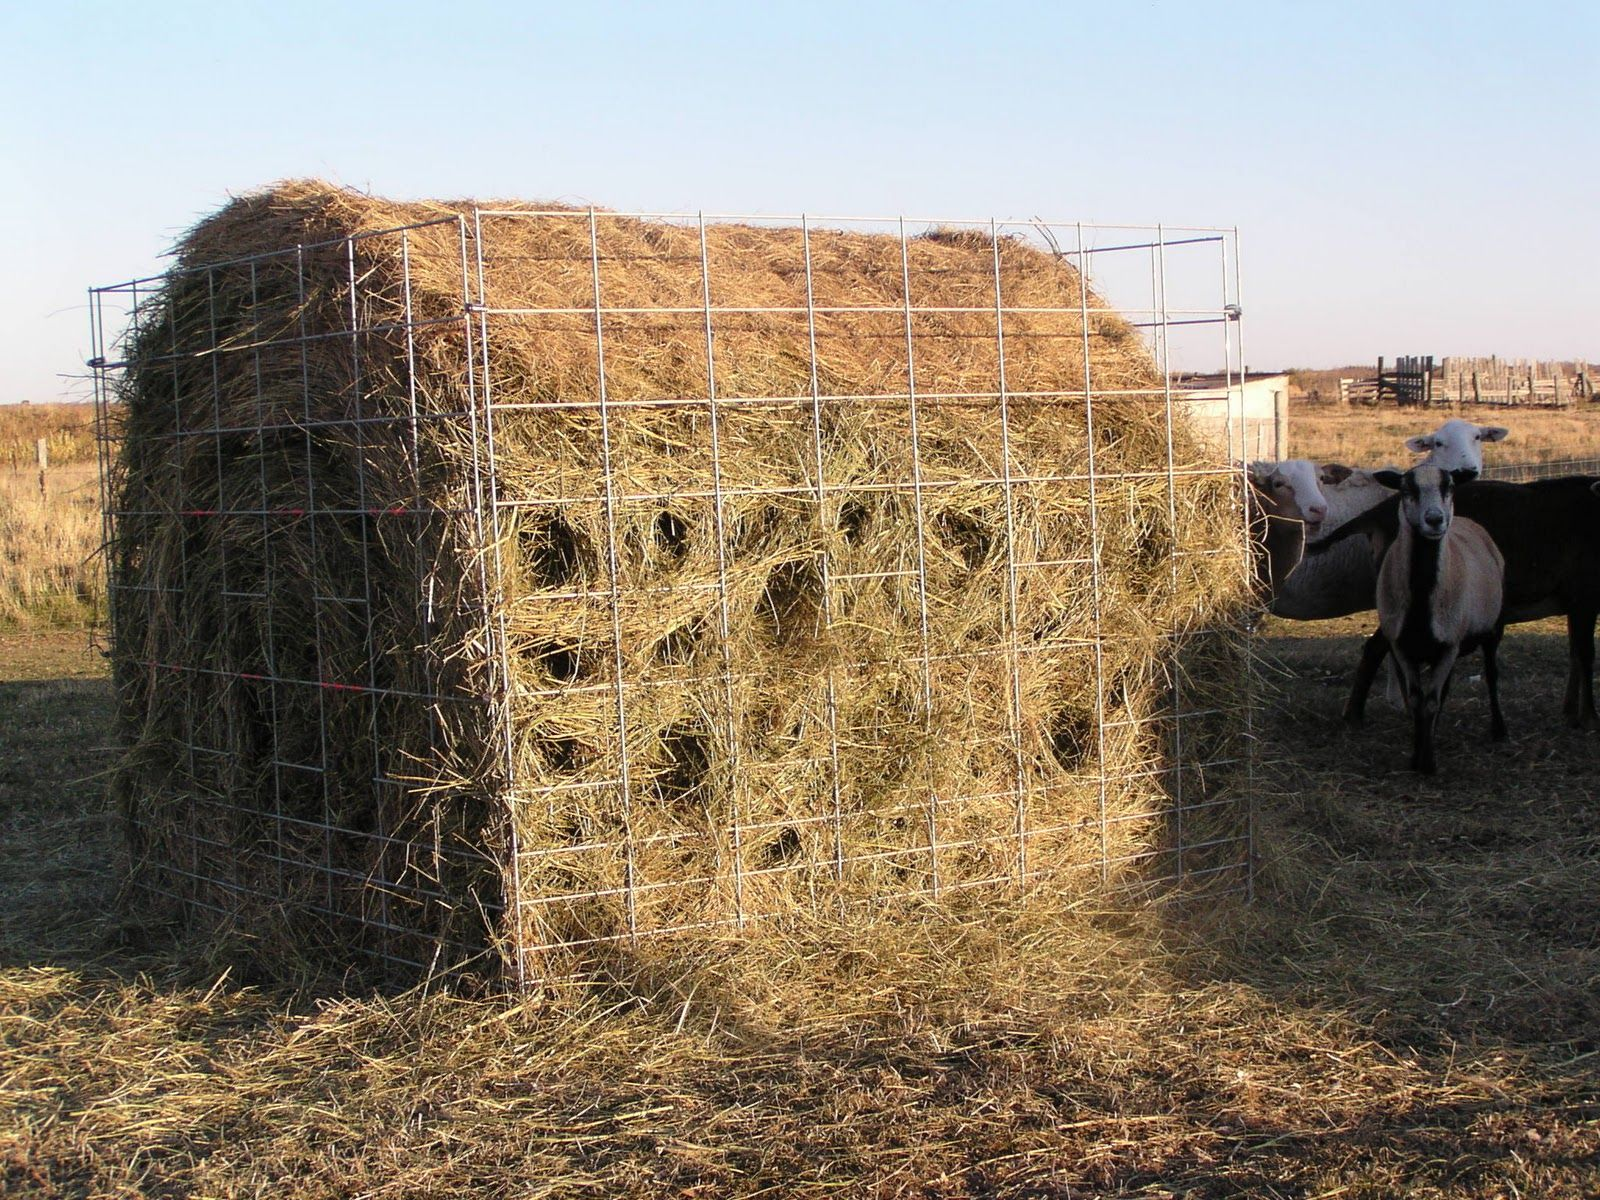 feeder horsemanagers hay cattle cone feeders manager horse the